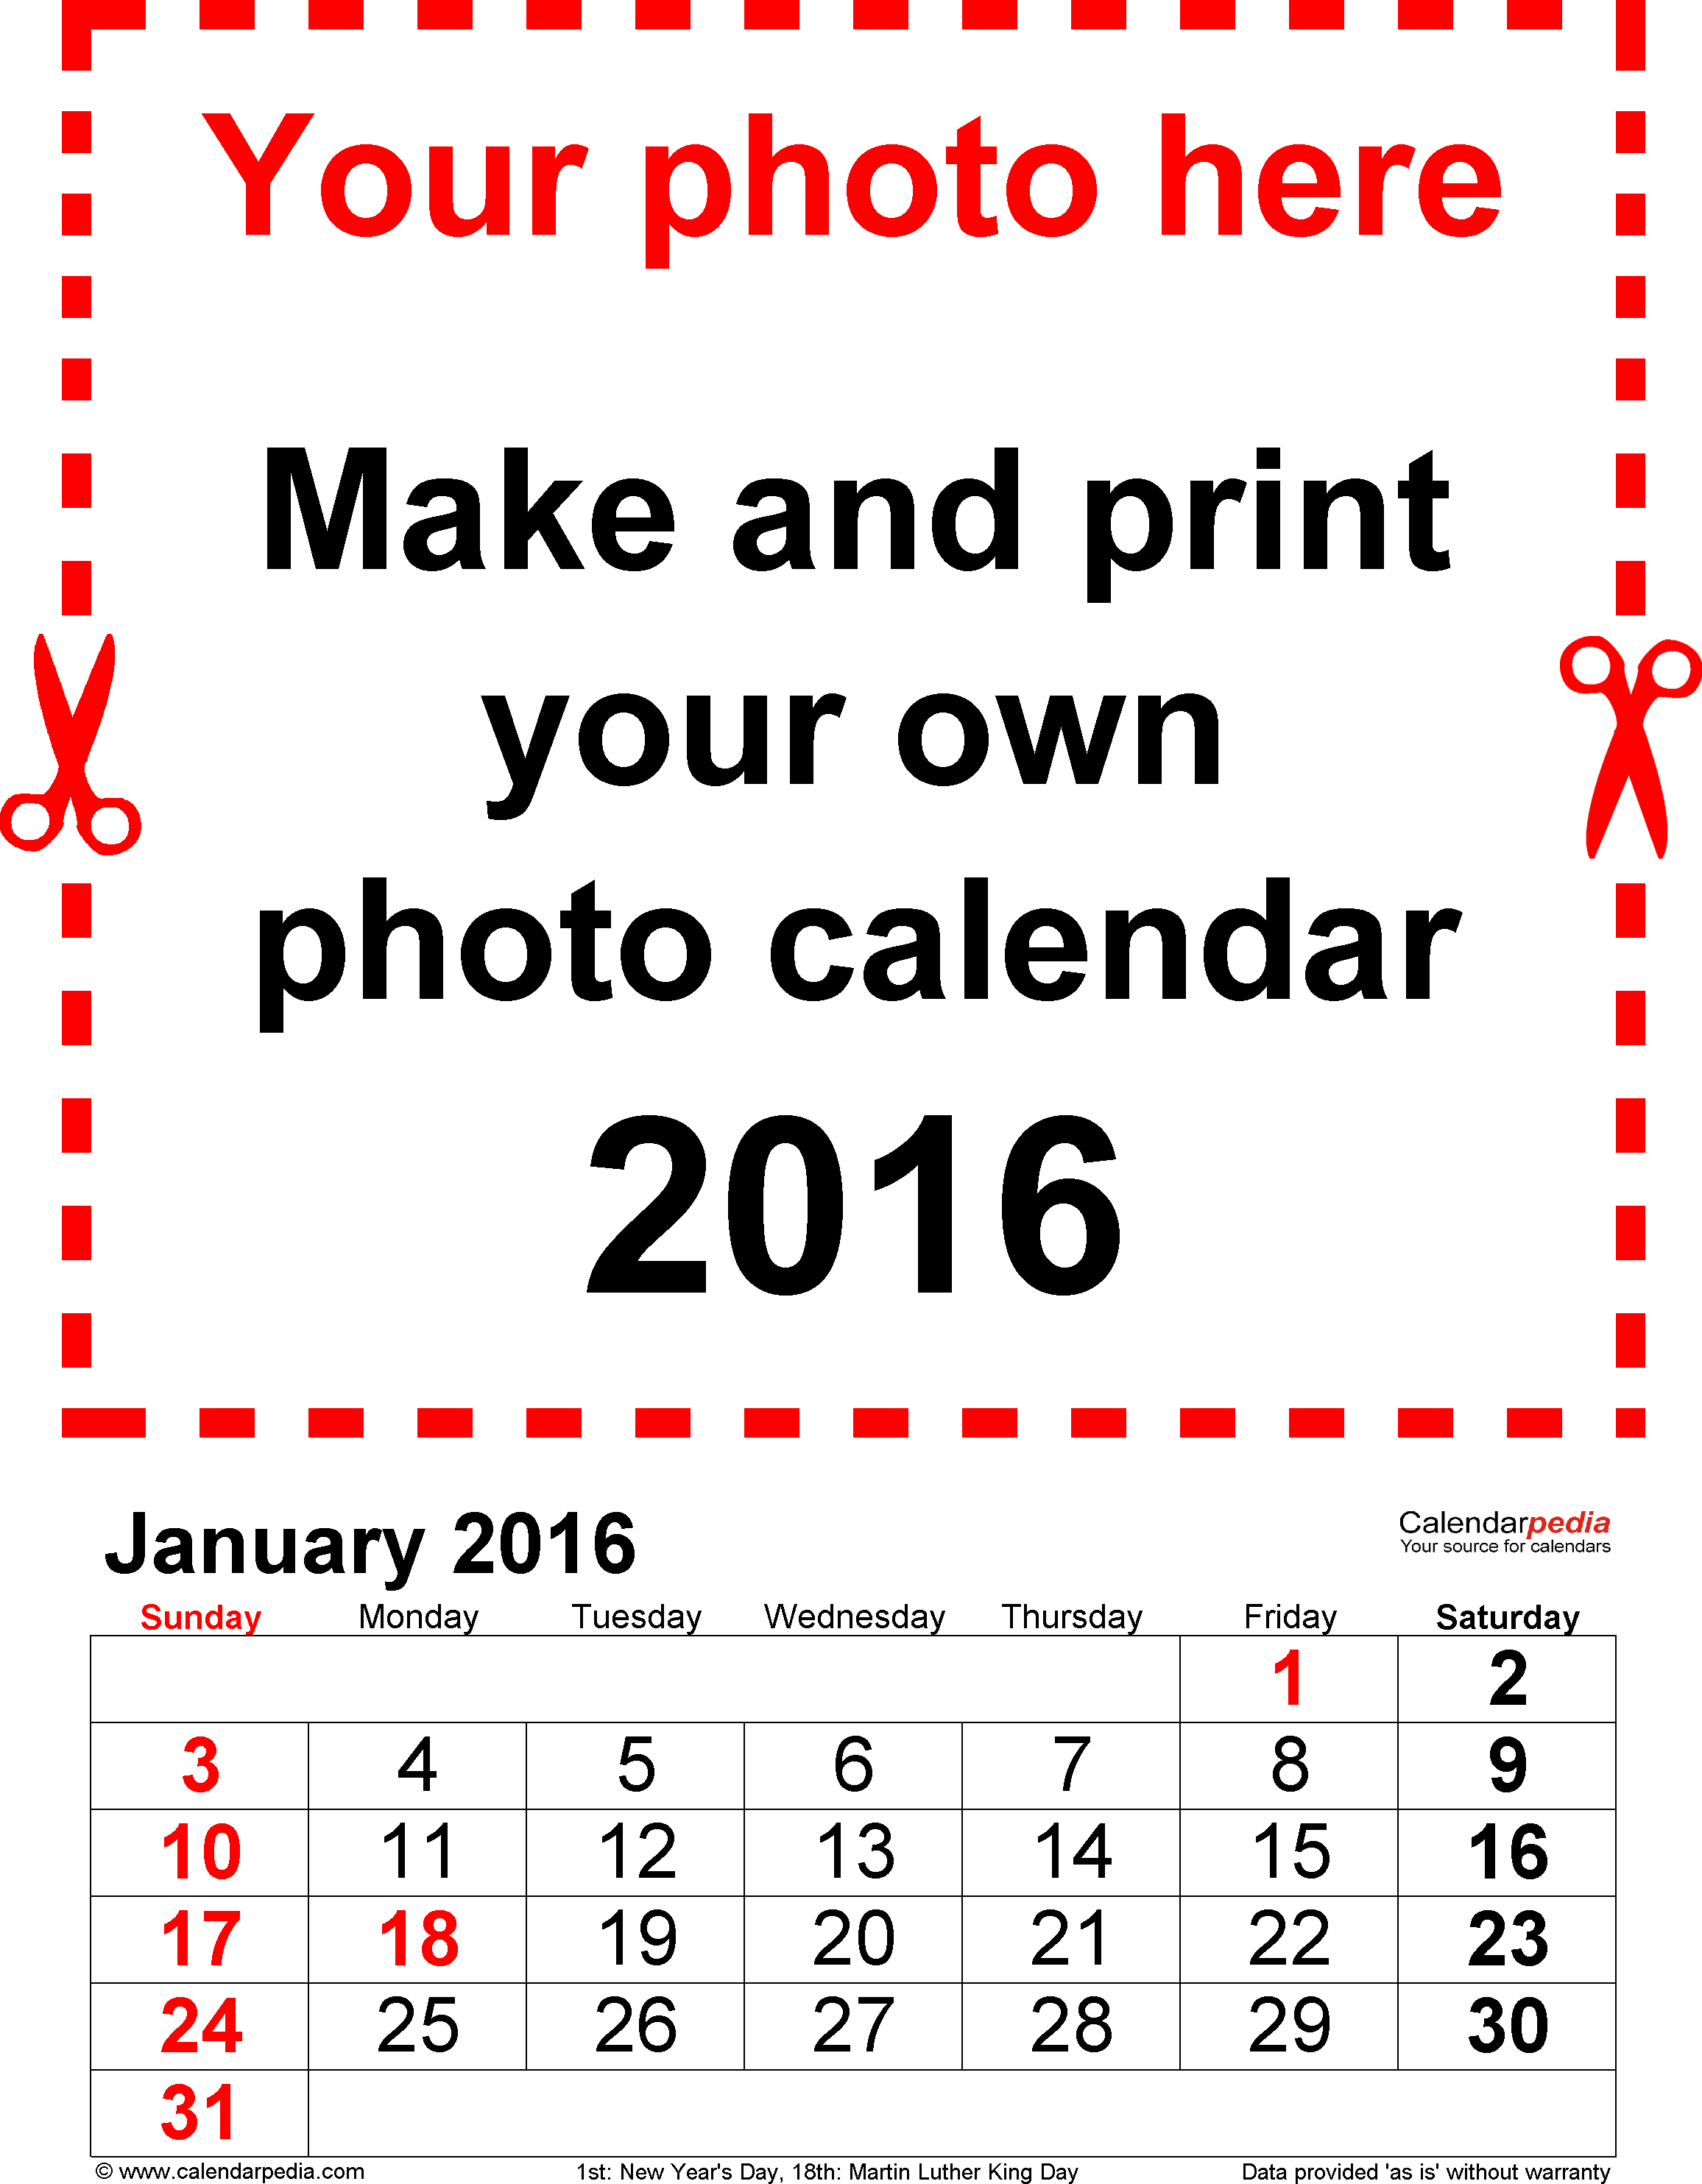 Template 2: Photo calendar 2016 for PDF, 12 pages, portrait format, large numerals for easy reading